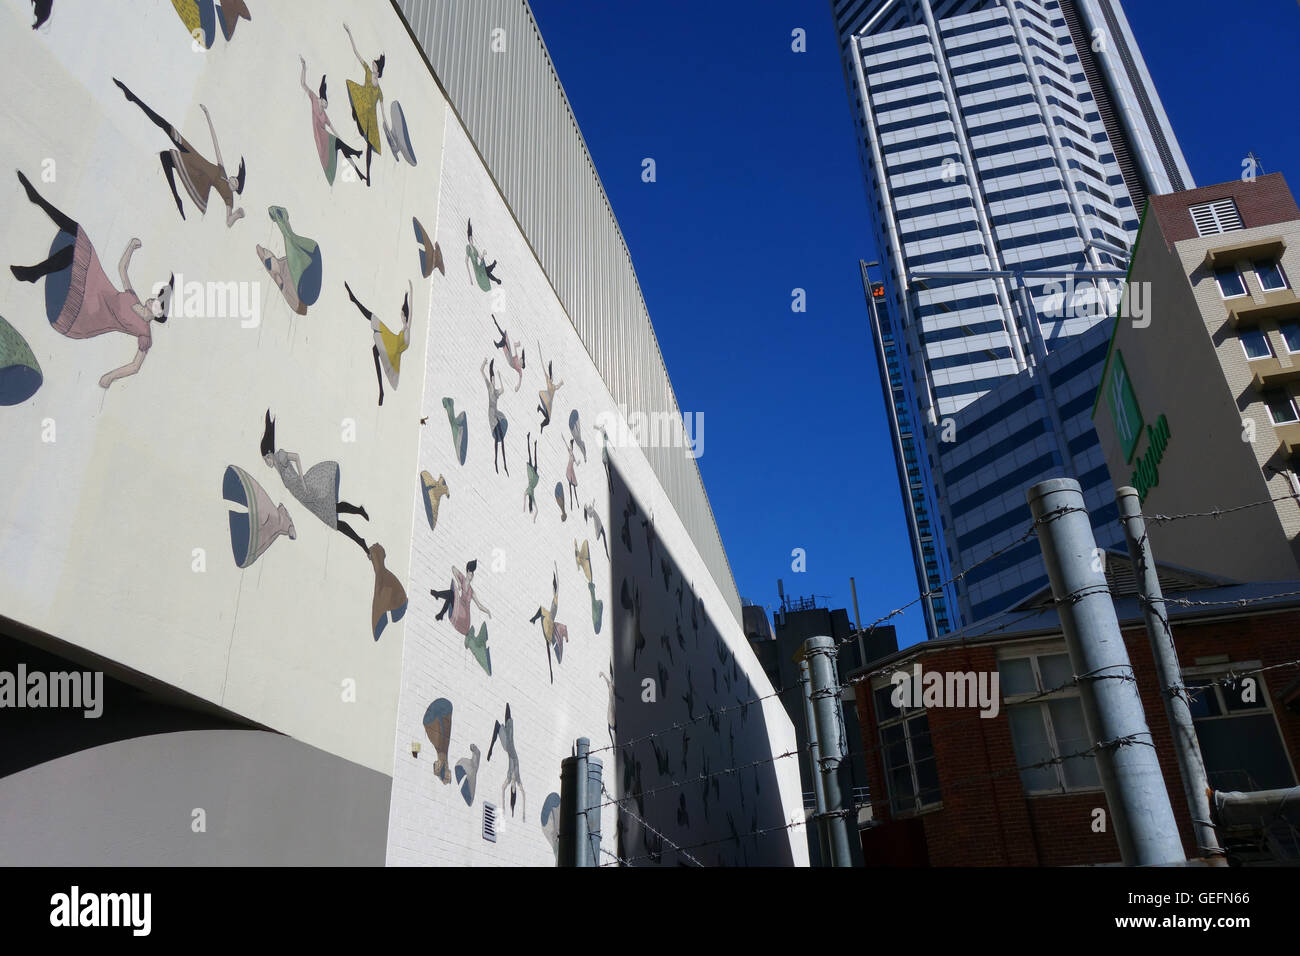 Wall Murals Perth Mural Of Falling Women And Clothing Wolf Lane Perth Cbd